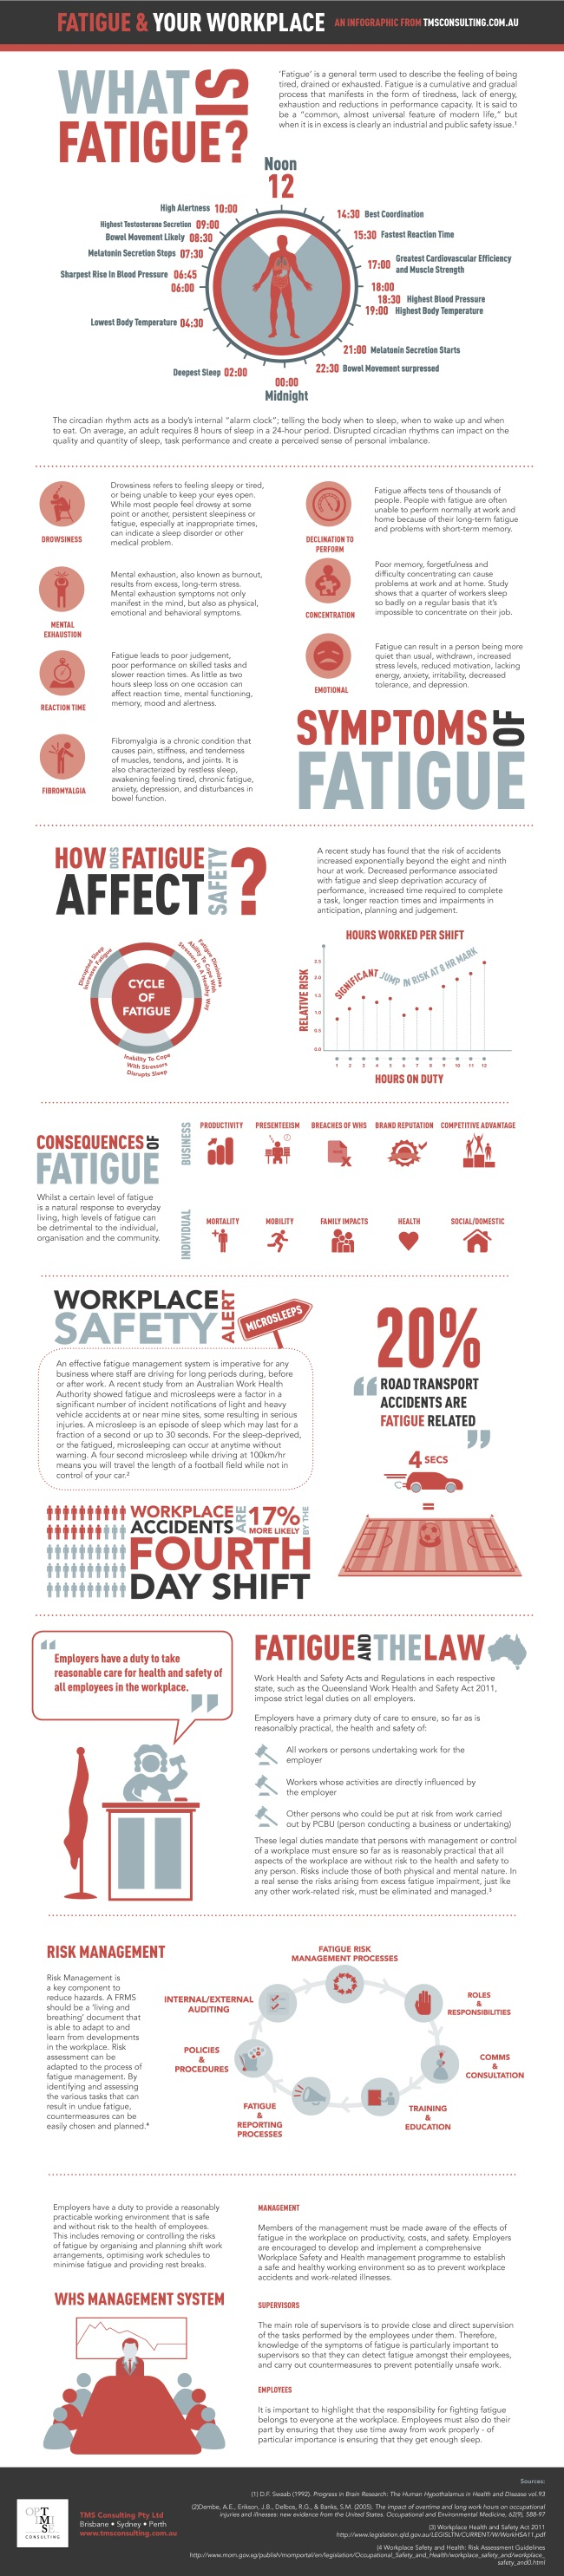 Fatigue_and_Your_Workplace_an_Infographic_by_TMS_Consulting